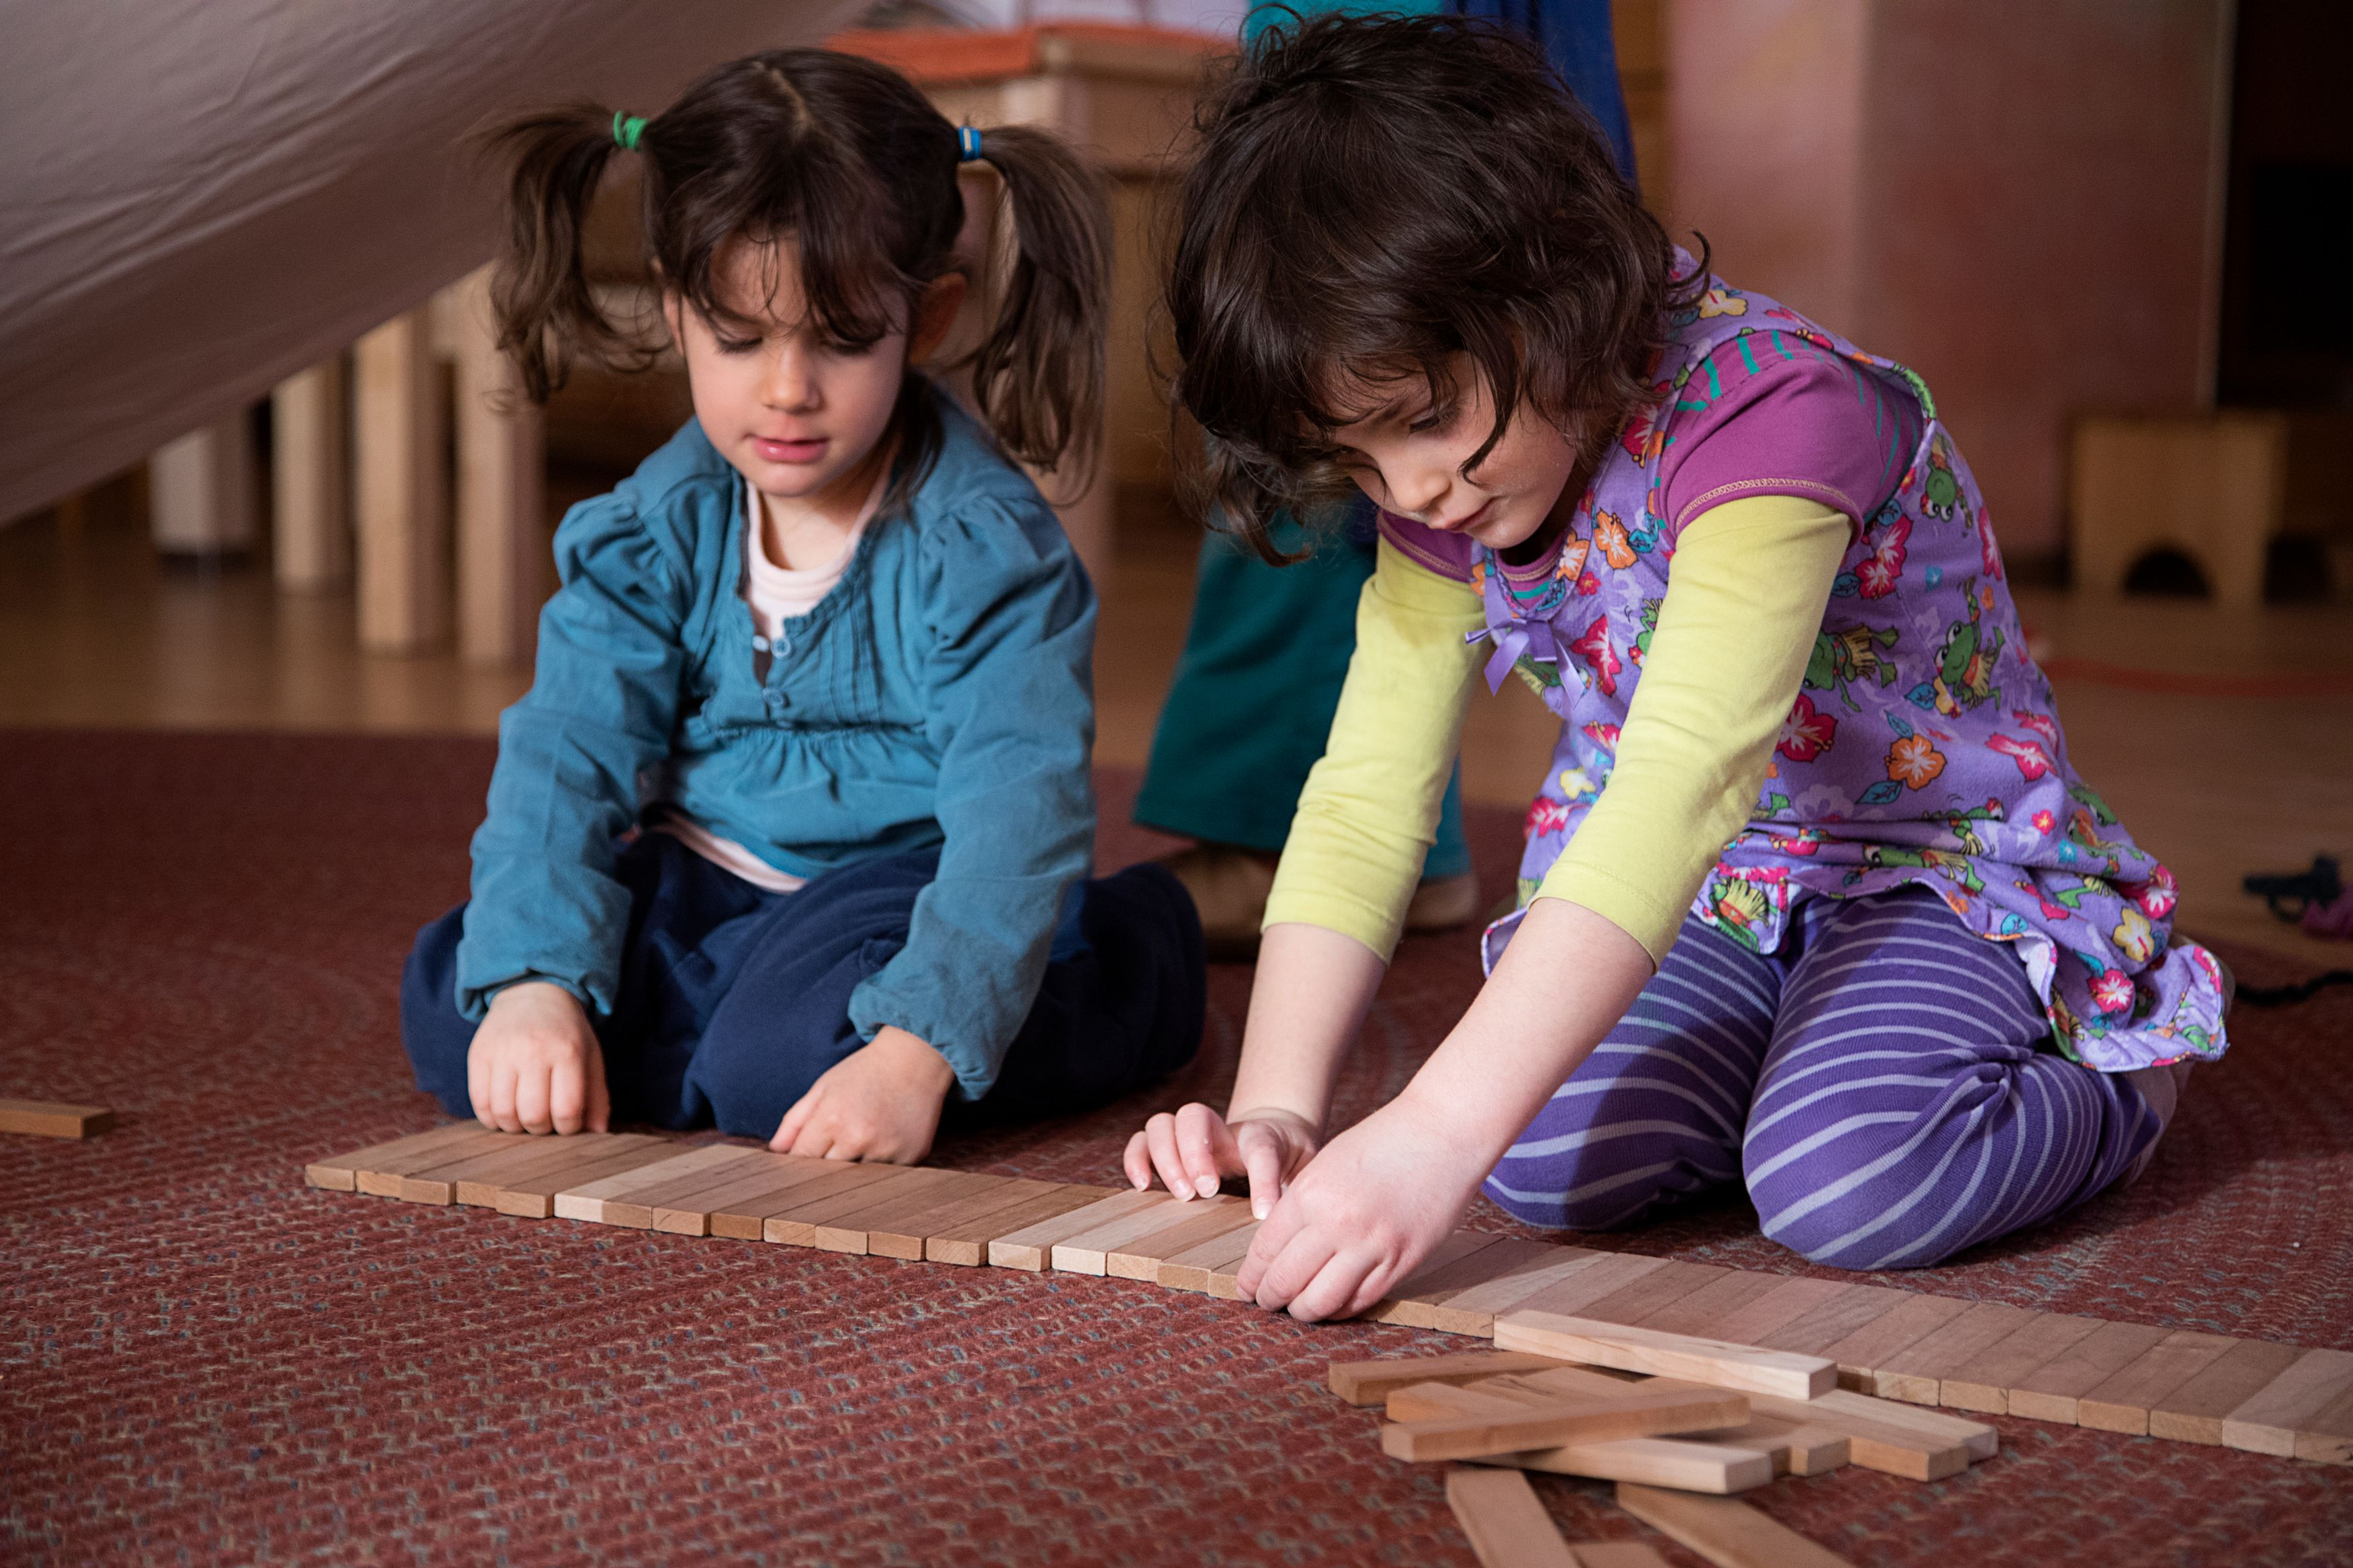 Two girls playing with wooden blocks